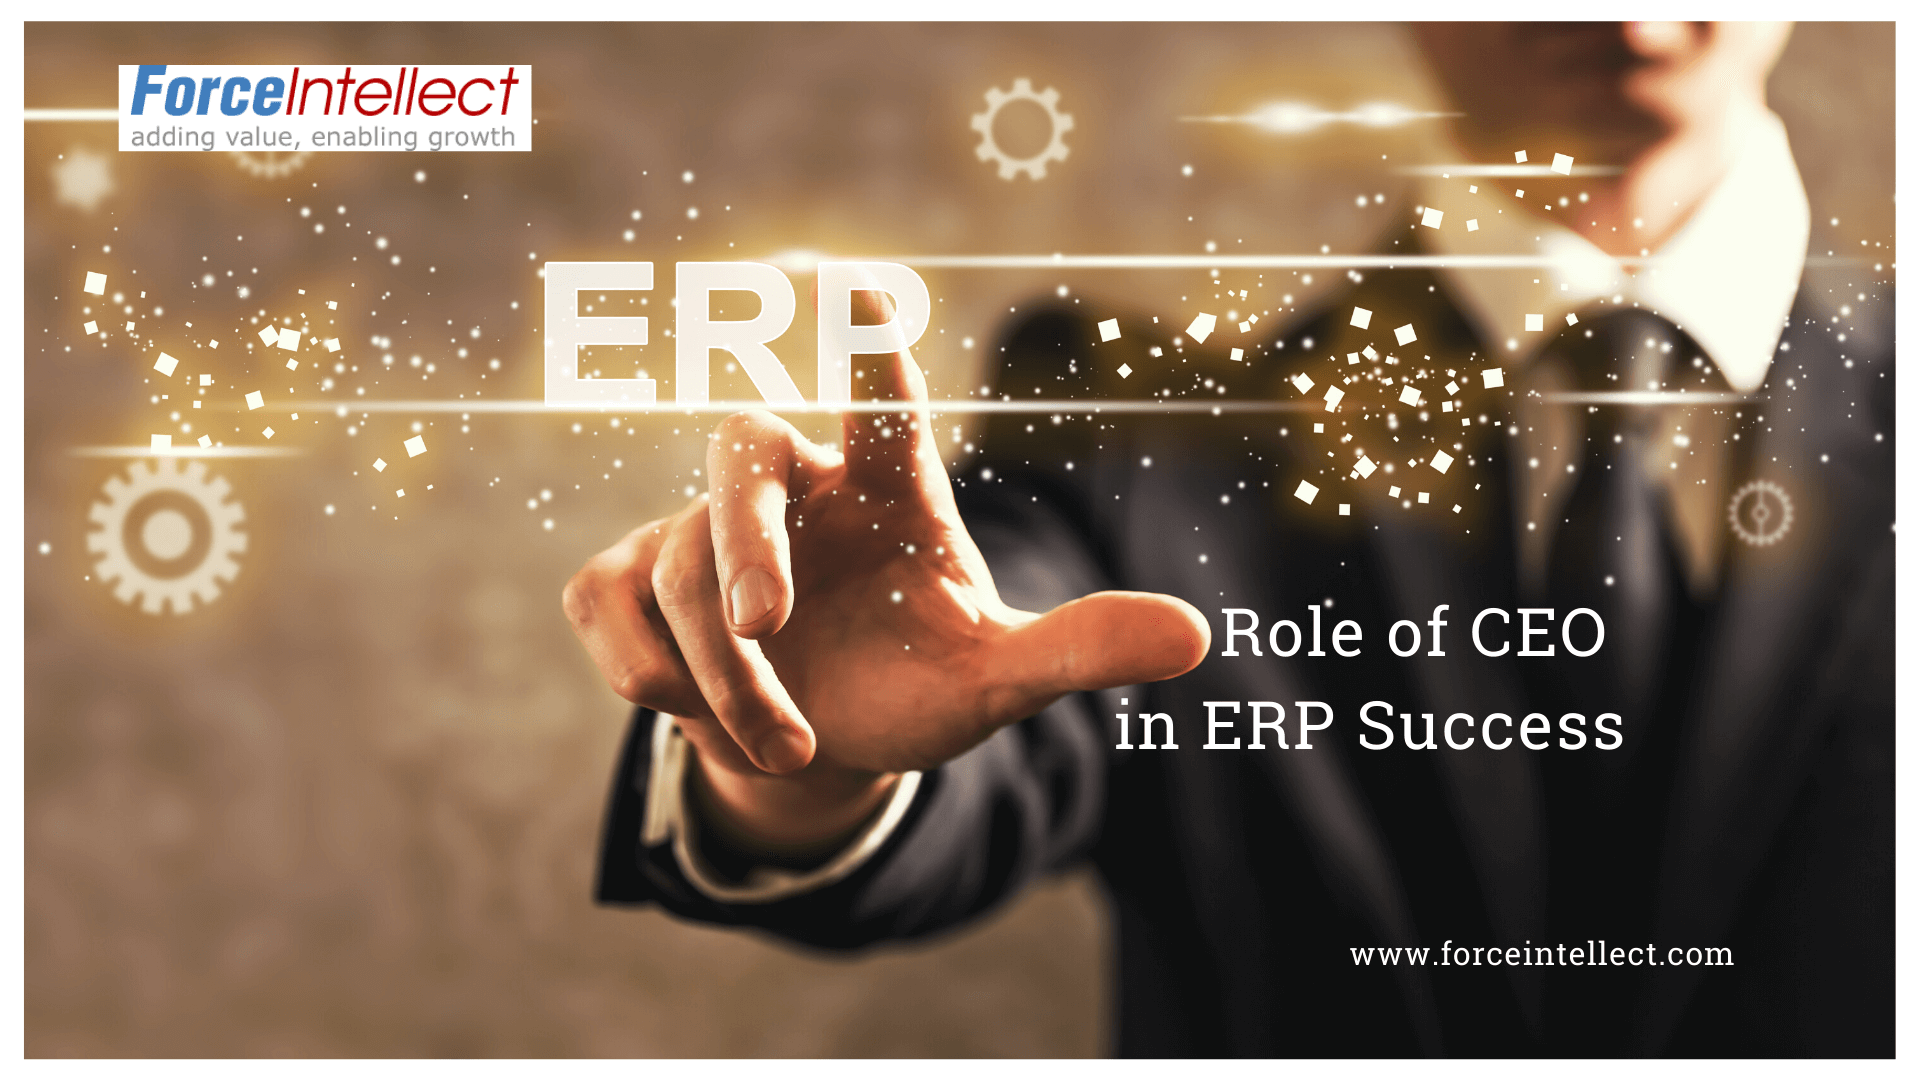 The Role of the CEO in ERP Success